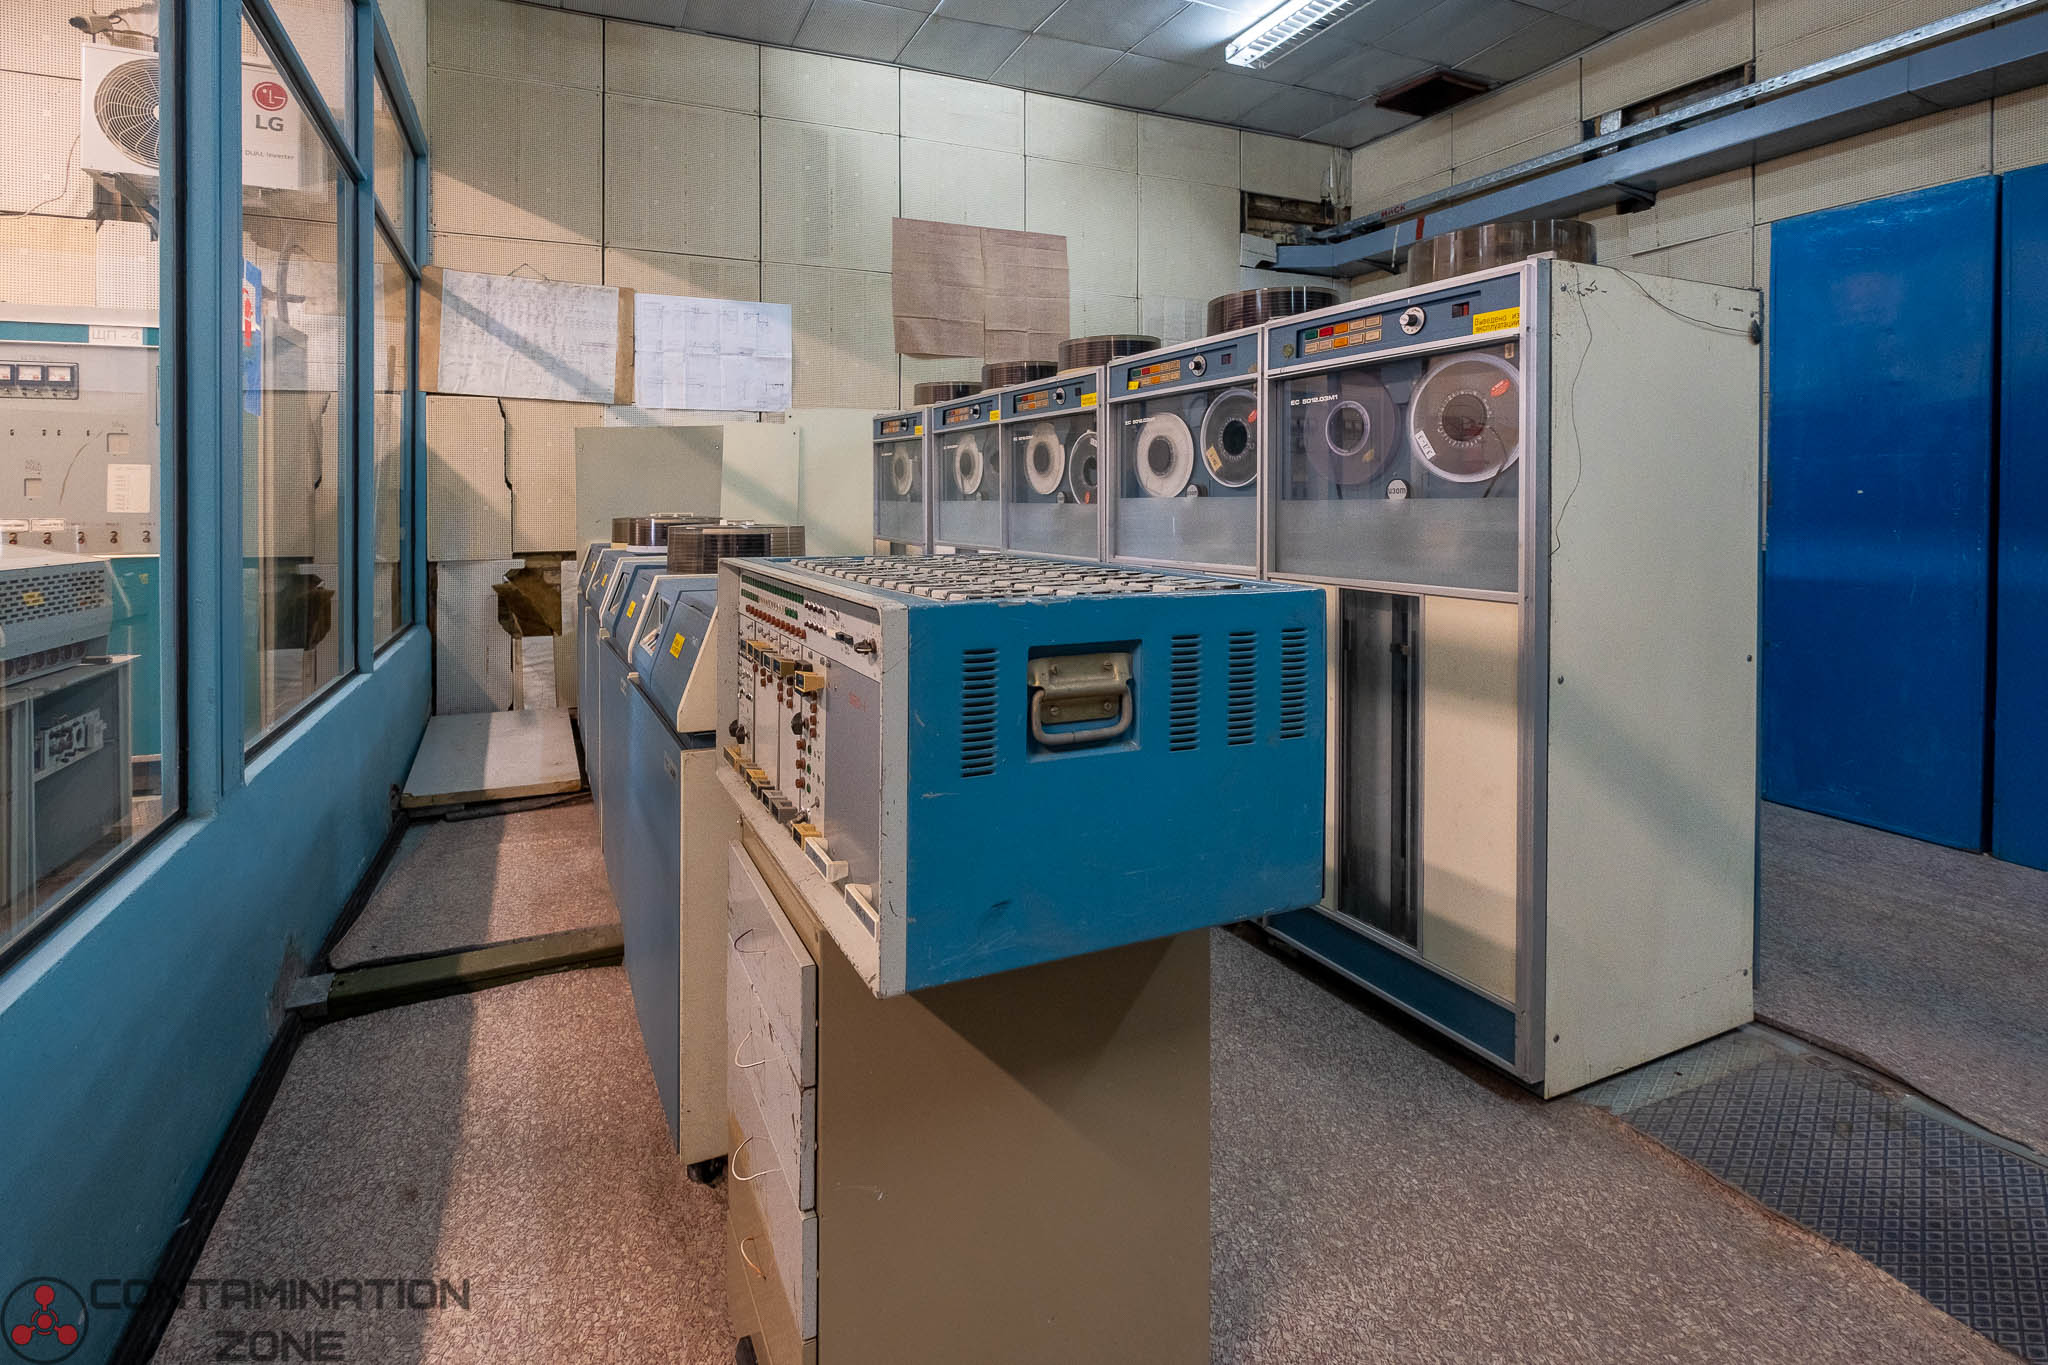 Skala computer system at Chernobyl Nuclear Power Plant